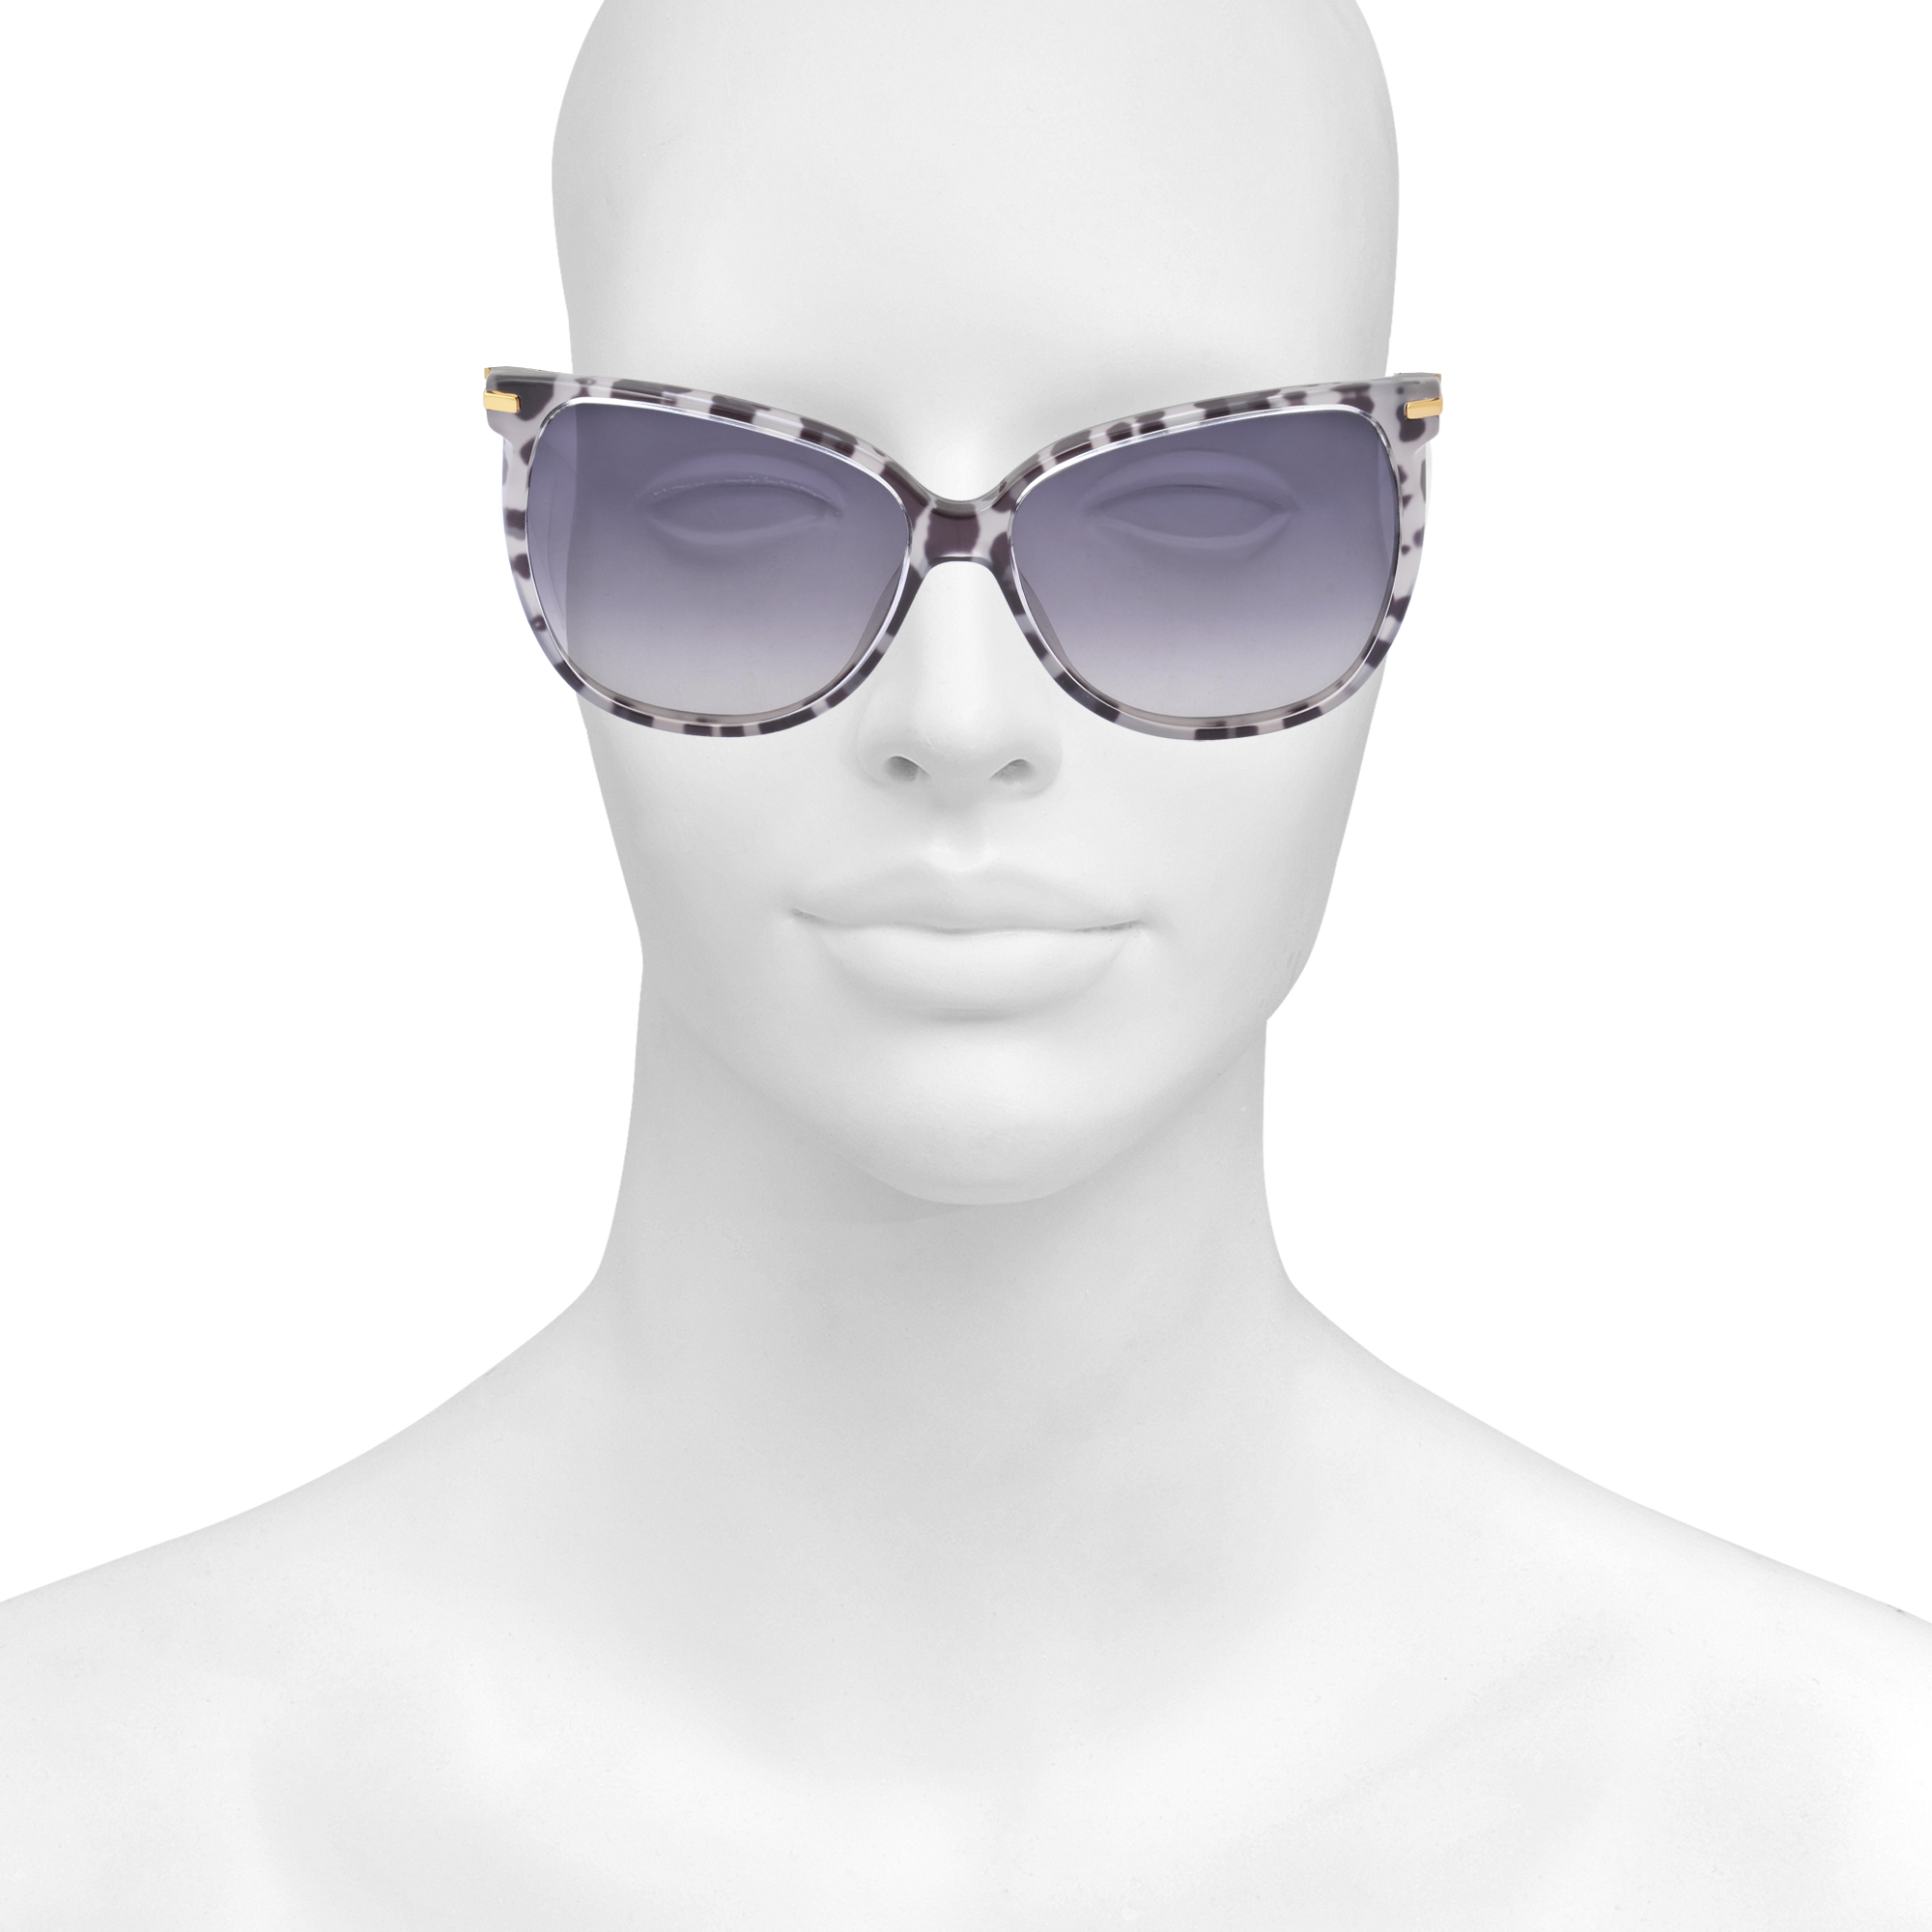 6aeaea38c0bc Marc Jacobs Mj 504/s Leopard Print Sunglasses in Purple - Lyst